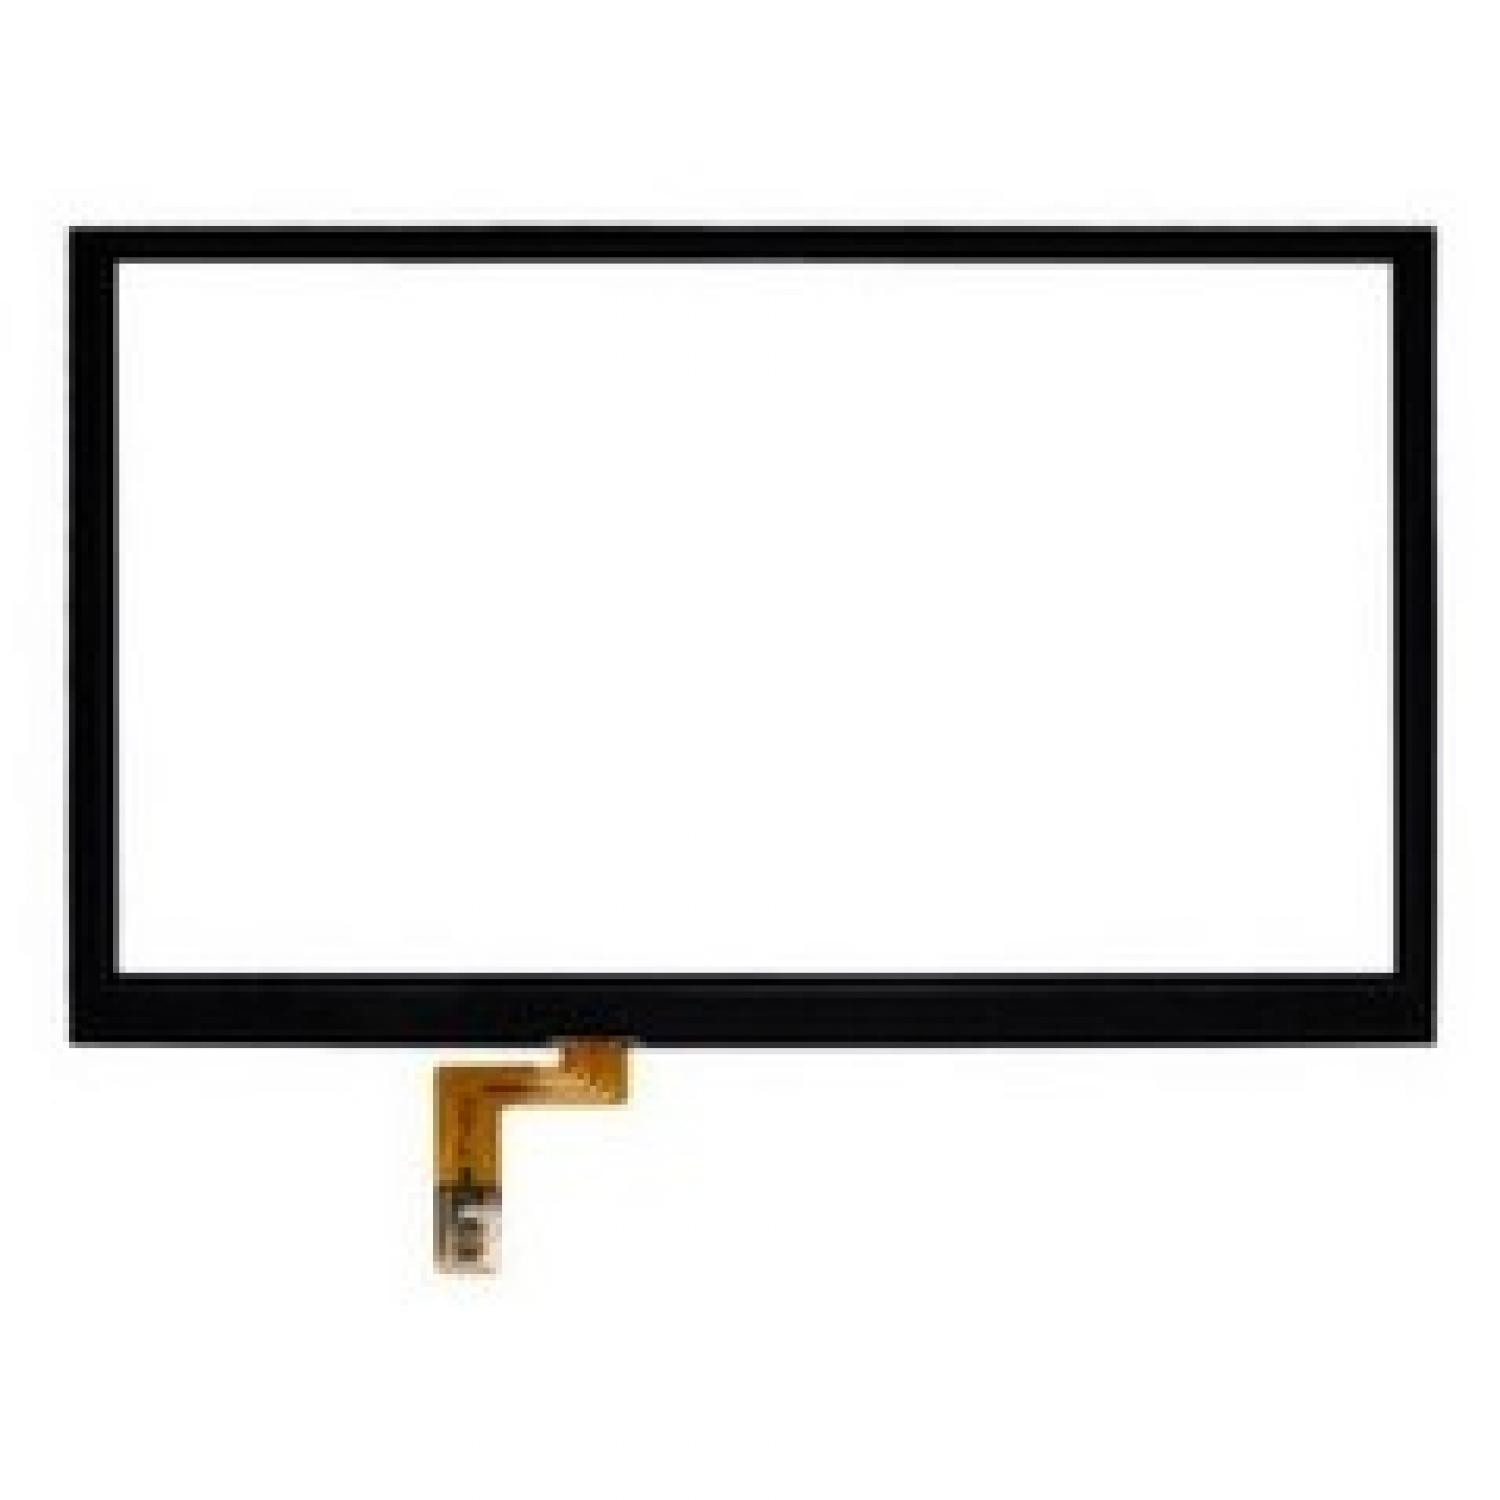 Touchscreen Panel Replacement for Huawei Ideos S7-101